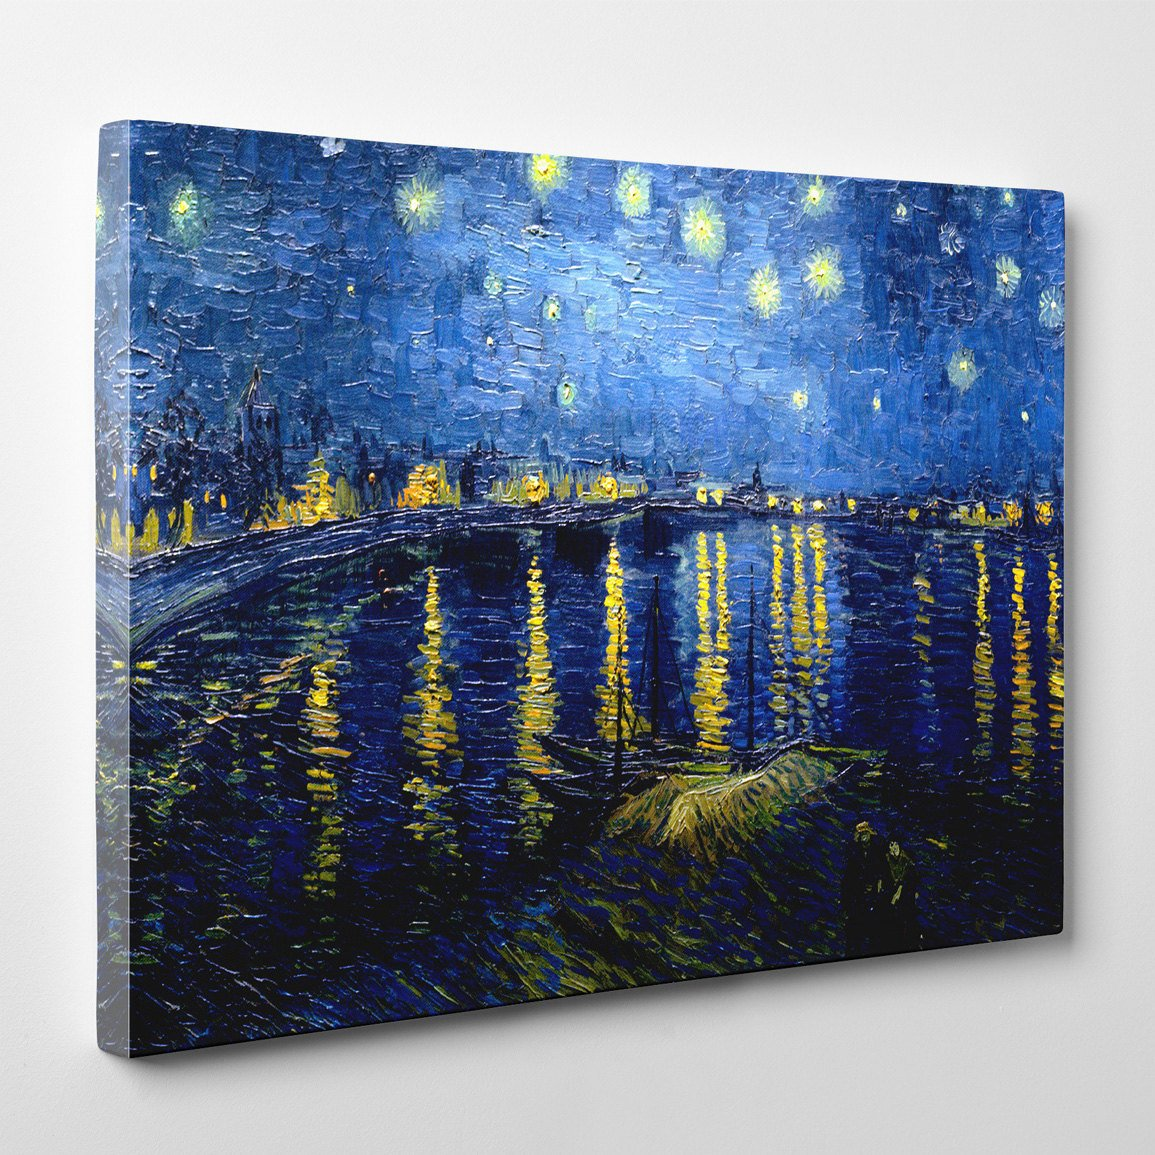 "Vincent van Gogh, ""Starry Night Over the Rhone"", 16″ x 24″ Canvas Gallery Wrap Print"